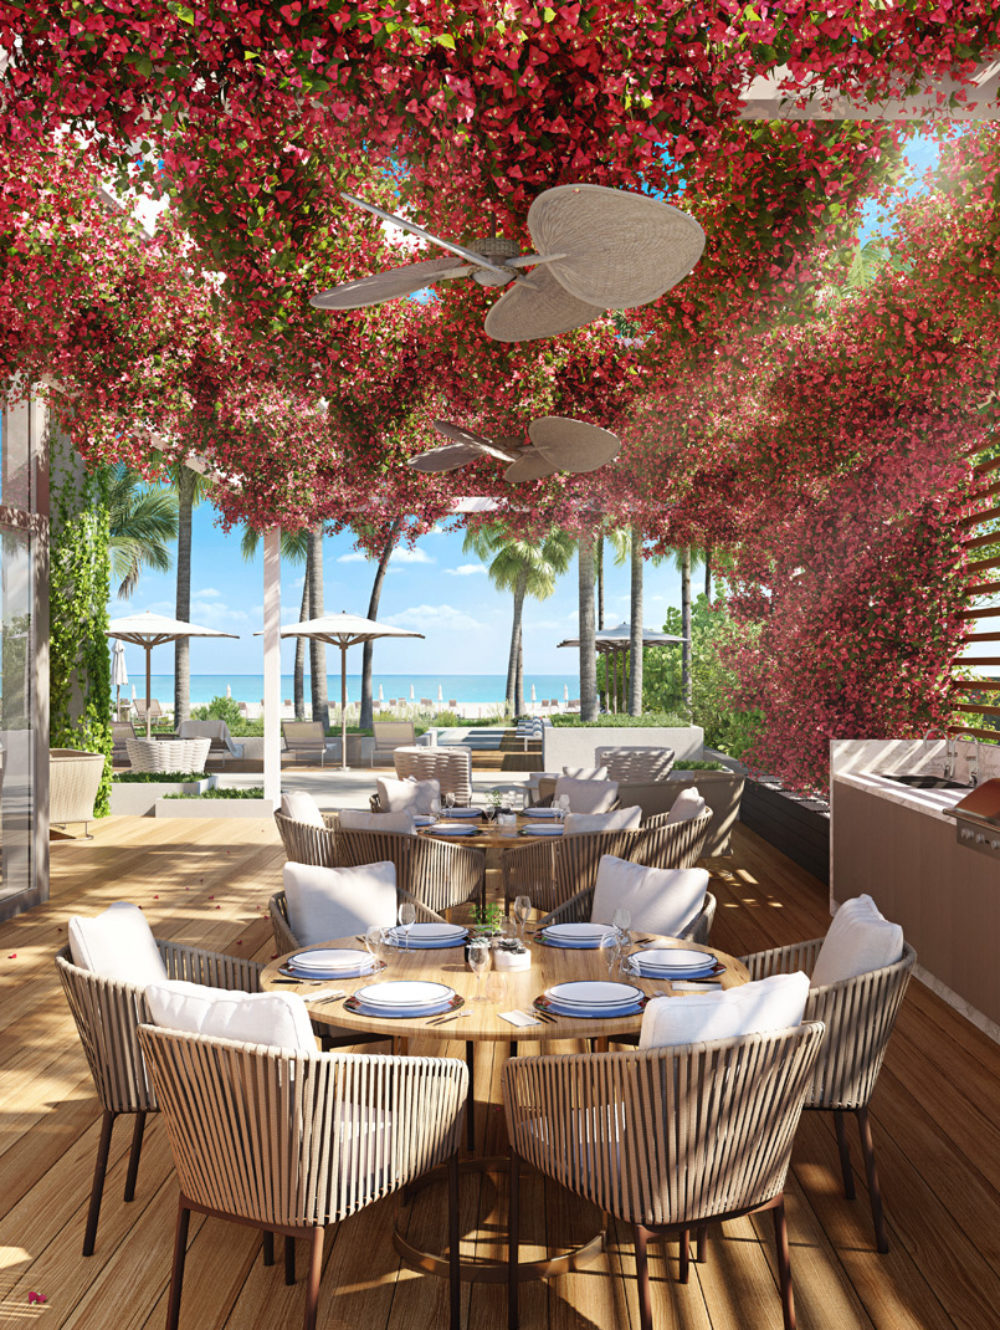 Exterior view of 57 Ocean residence terrace and grill area in Miami. Has a floral ceiling, dining areas and wooden floors.